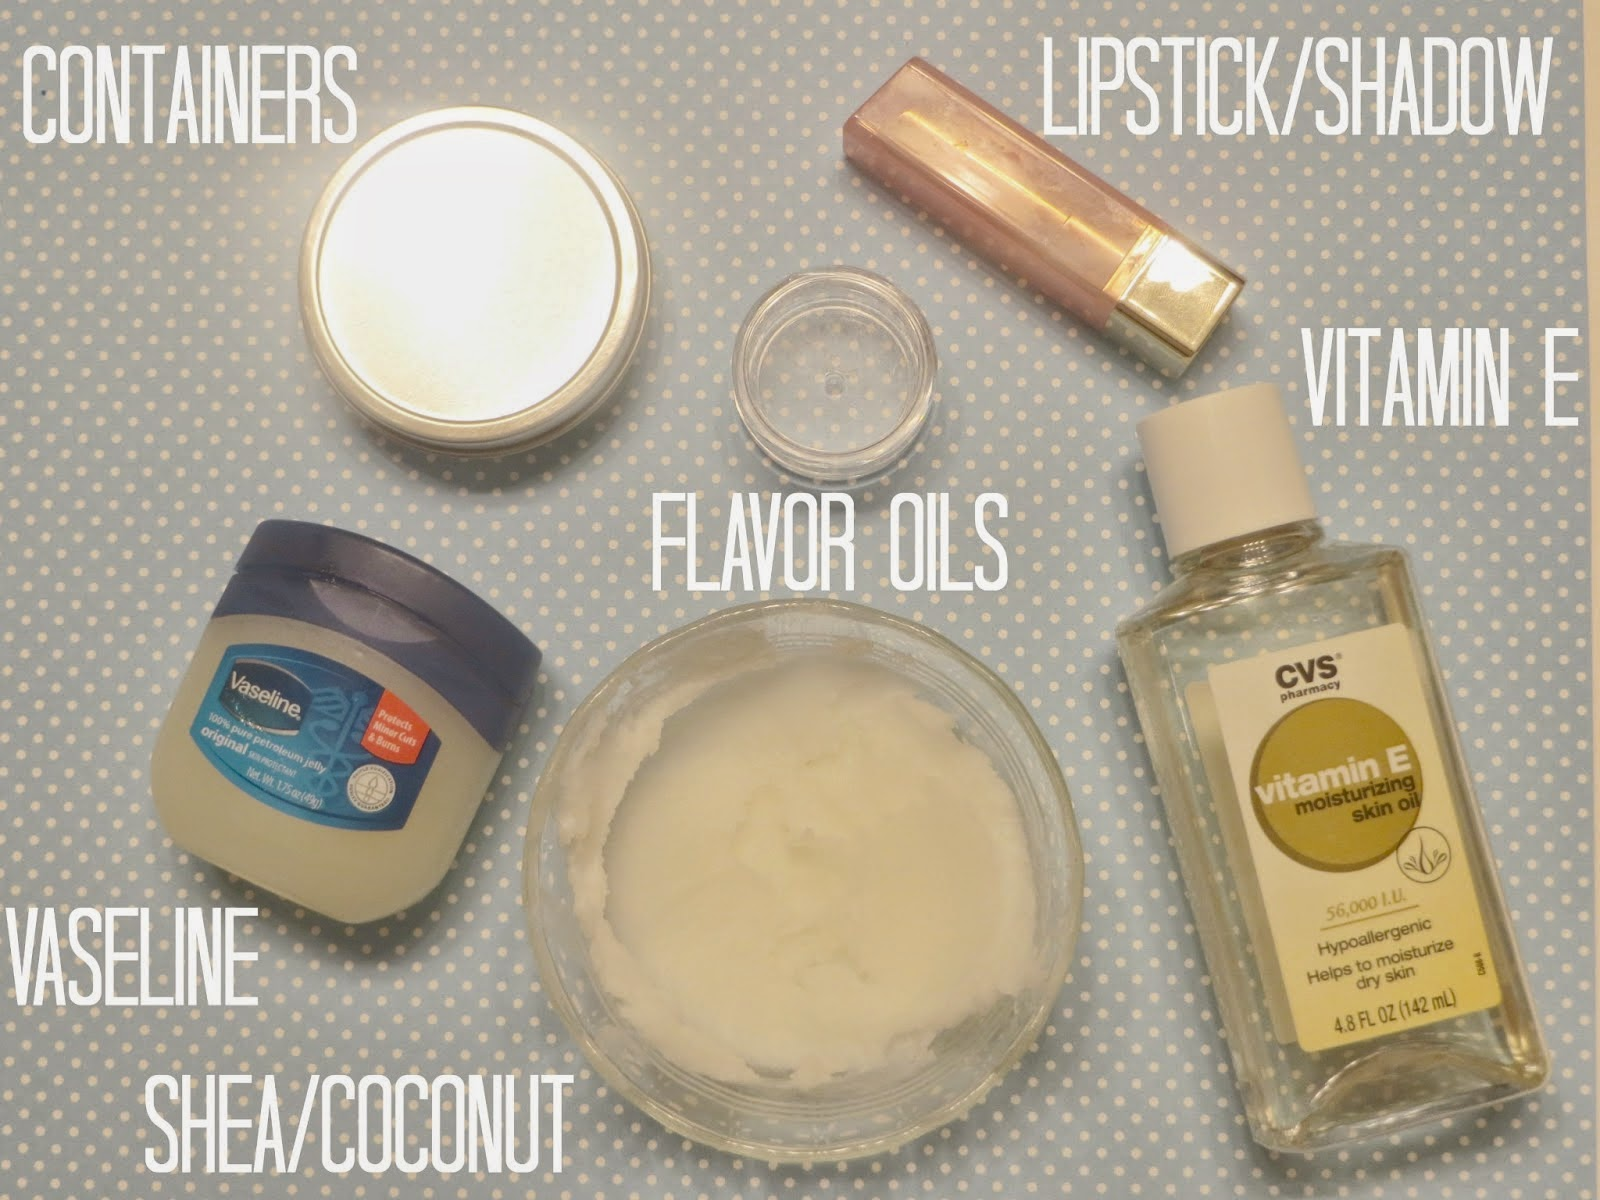 Ingredients for DIY Vaseline tinted balm